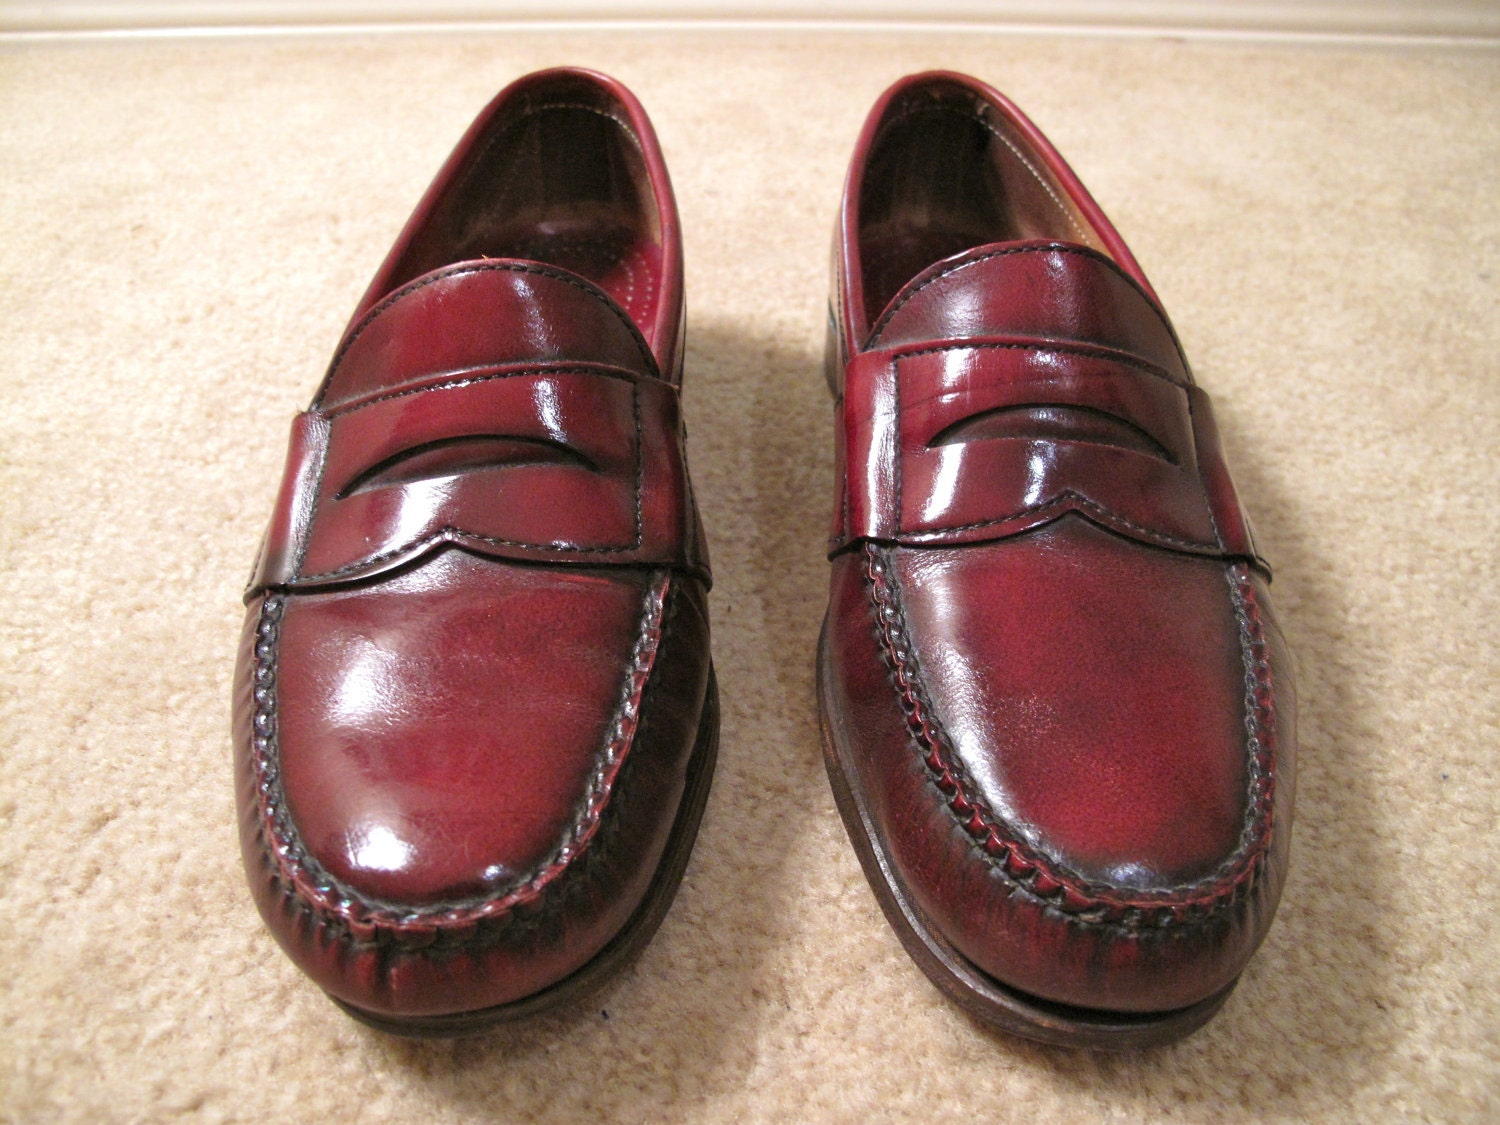 Vintage Oxblood Leather Penny Loafers Shoes Made in USA